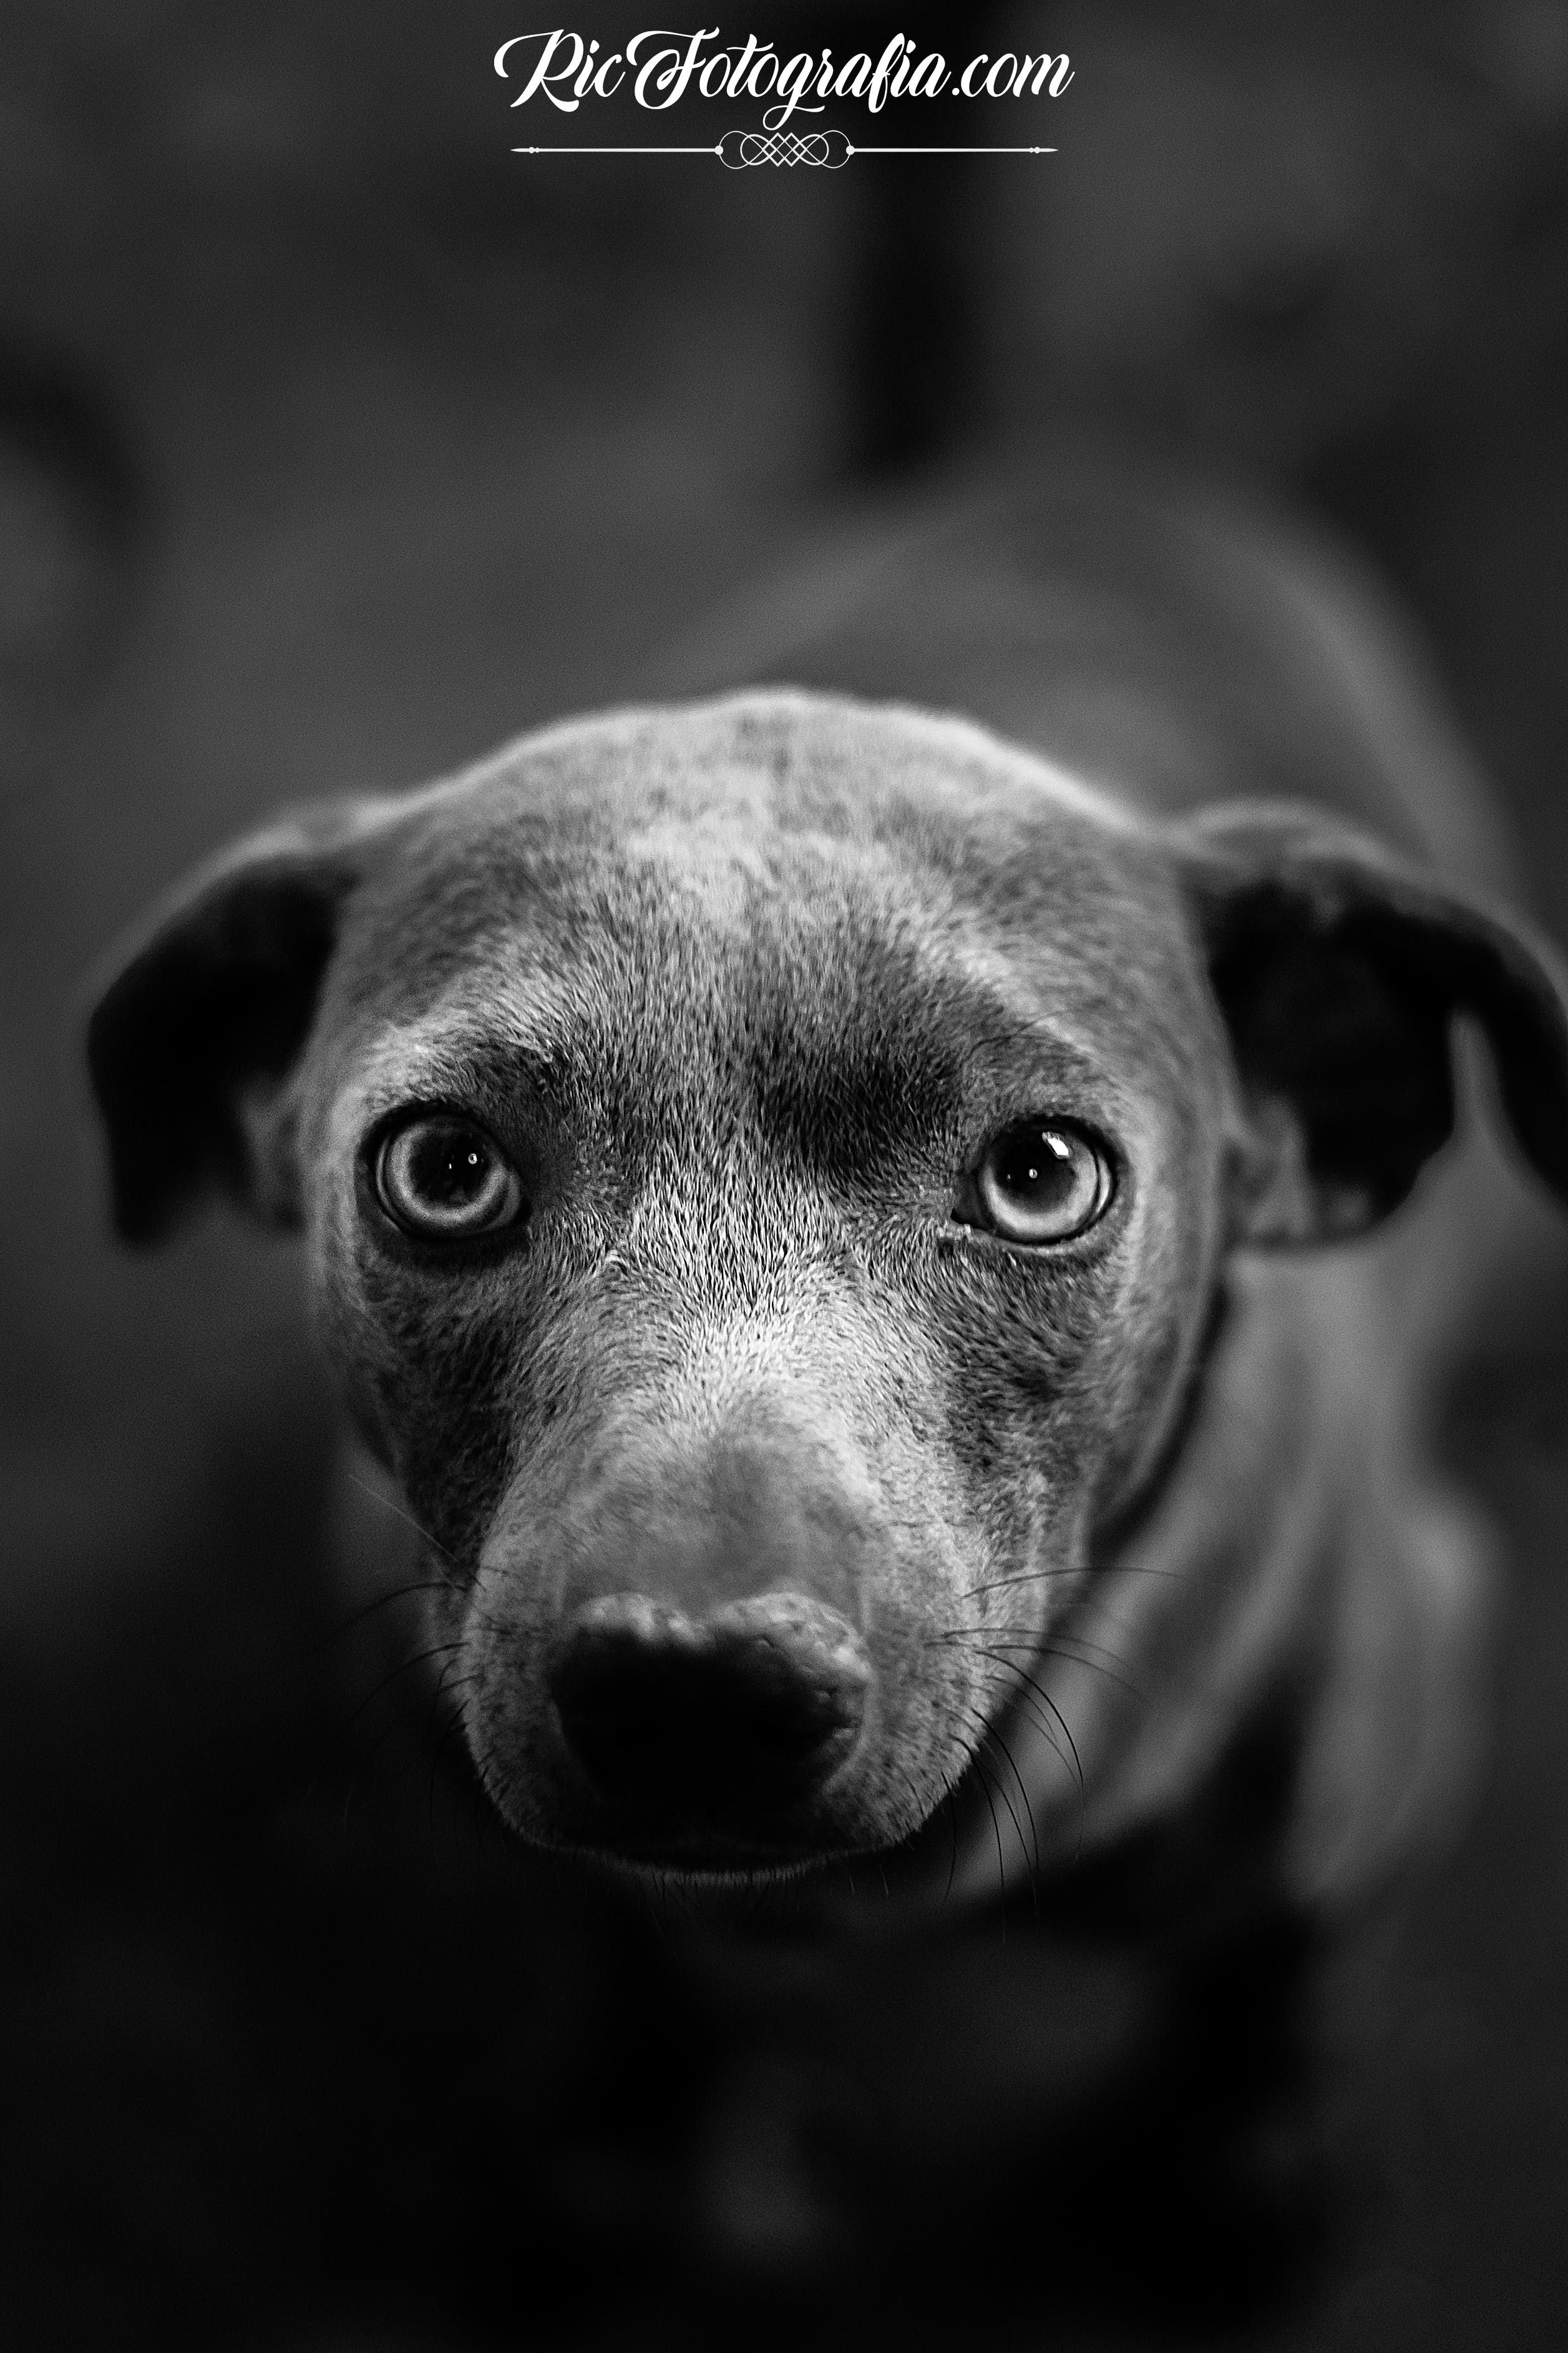 Free stock photo of dog, picture, black and white